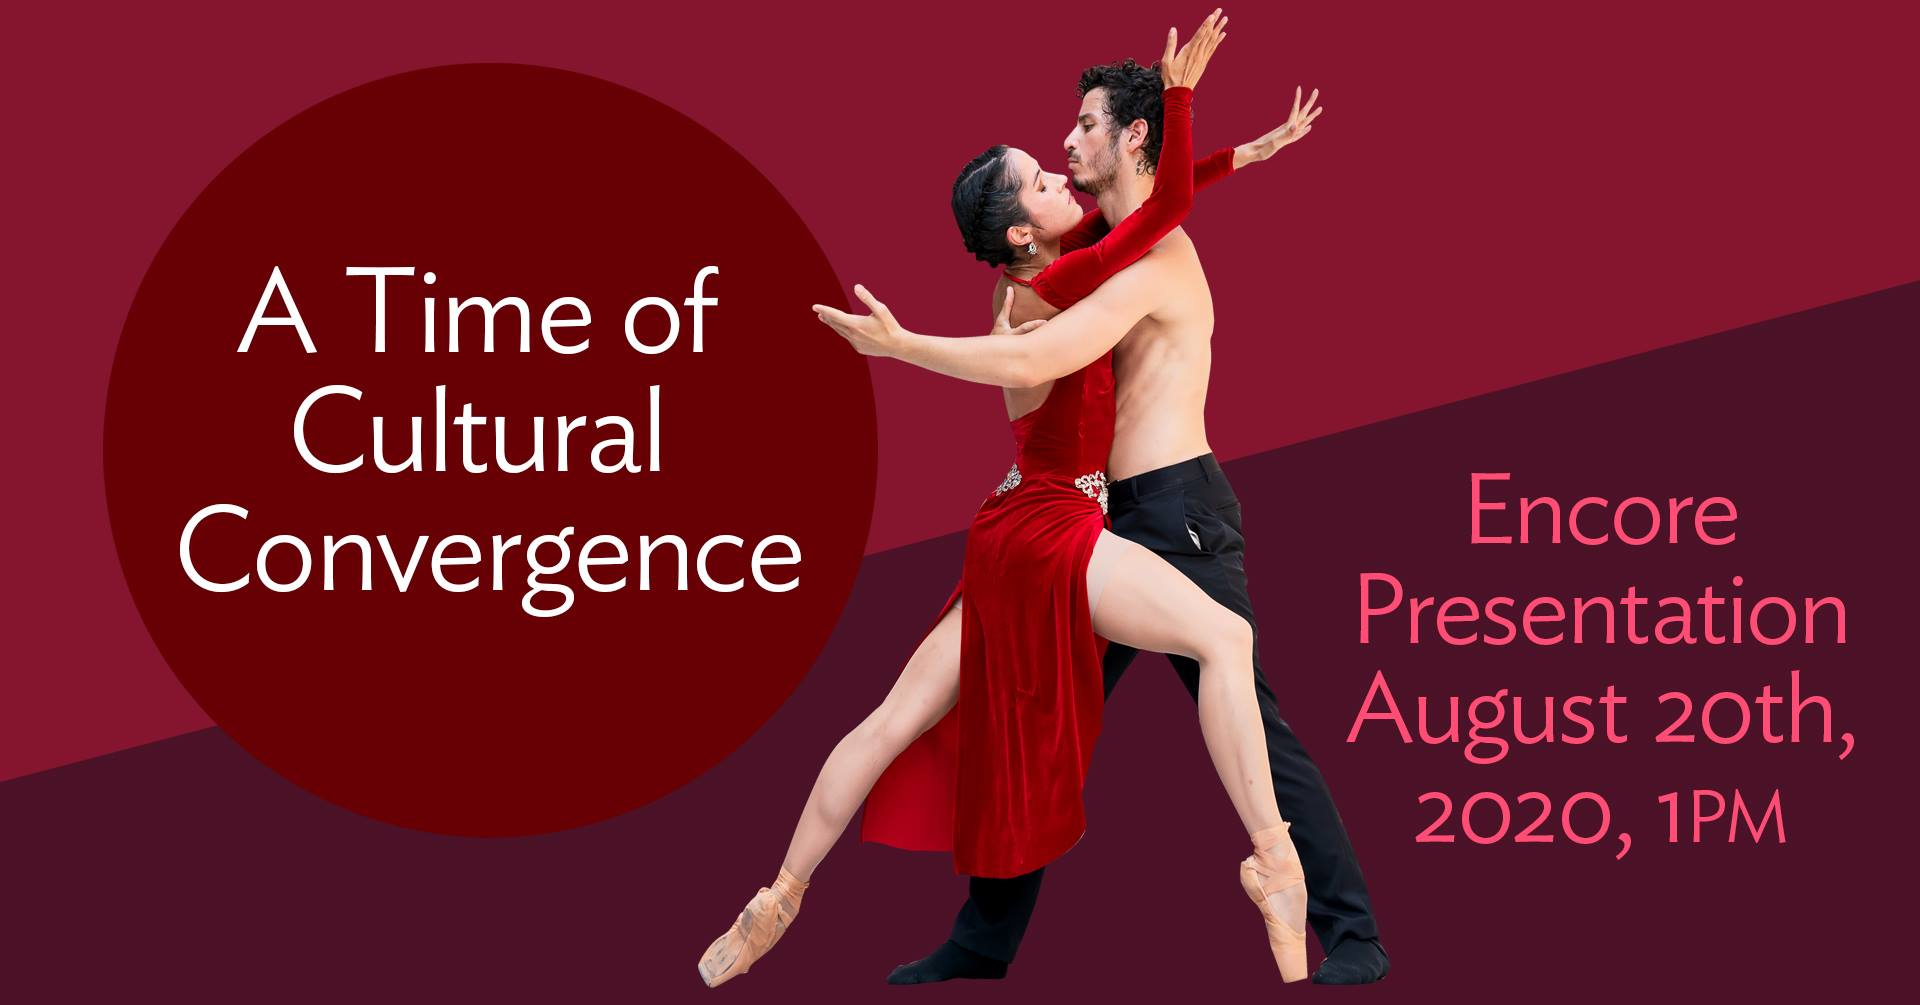 8 20 20 Encore Presentation A Time Of Cultural Convergence Accent Dance